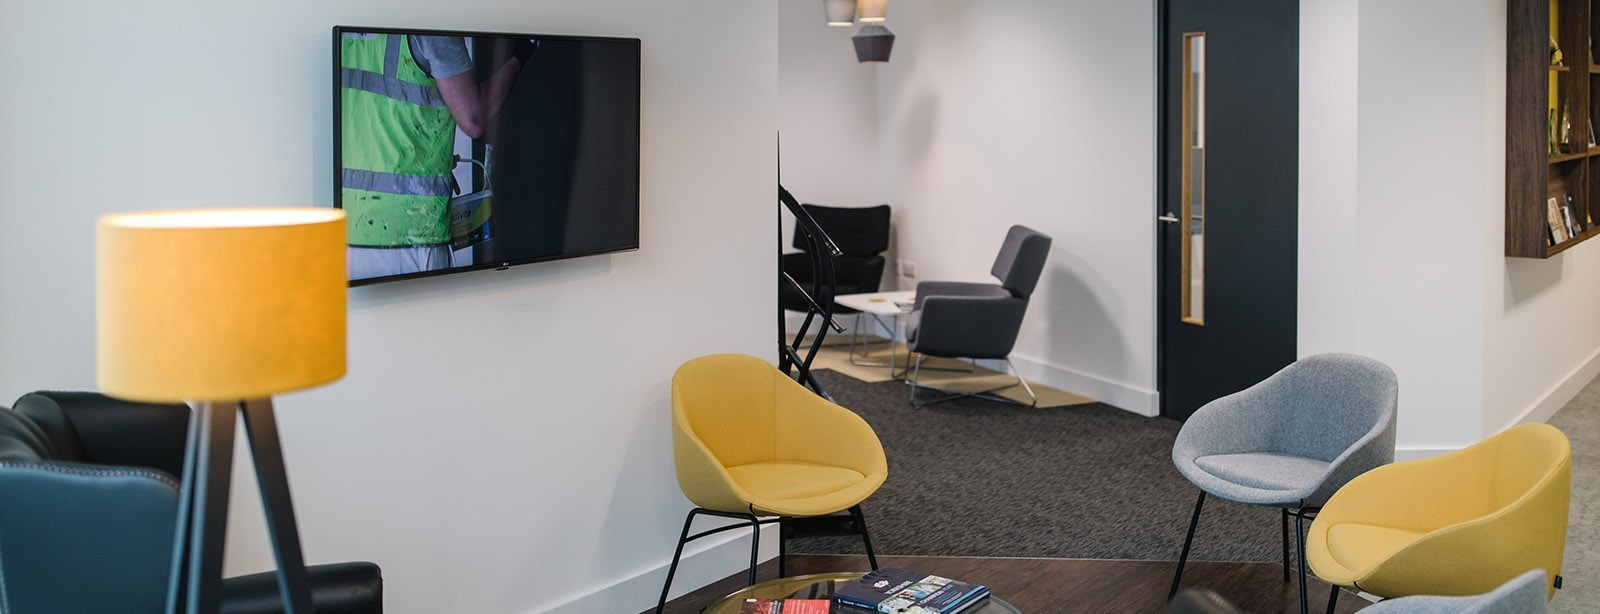 immigration solicitors in Leeds office